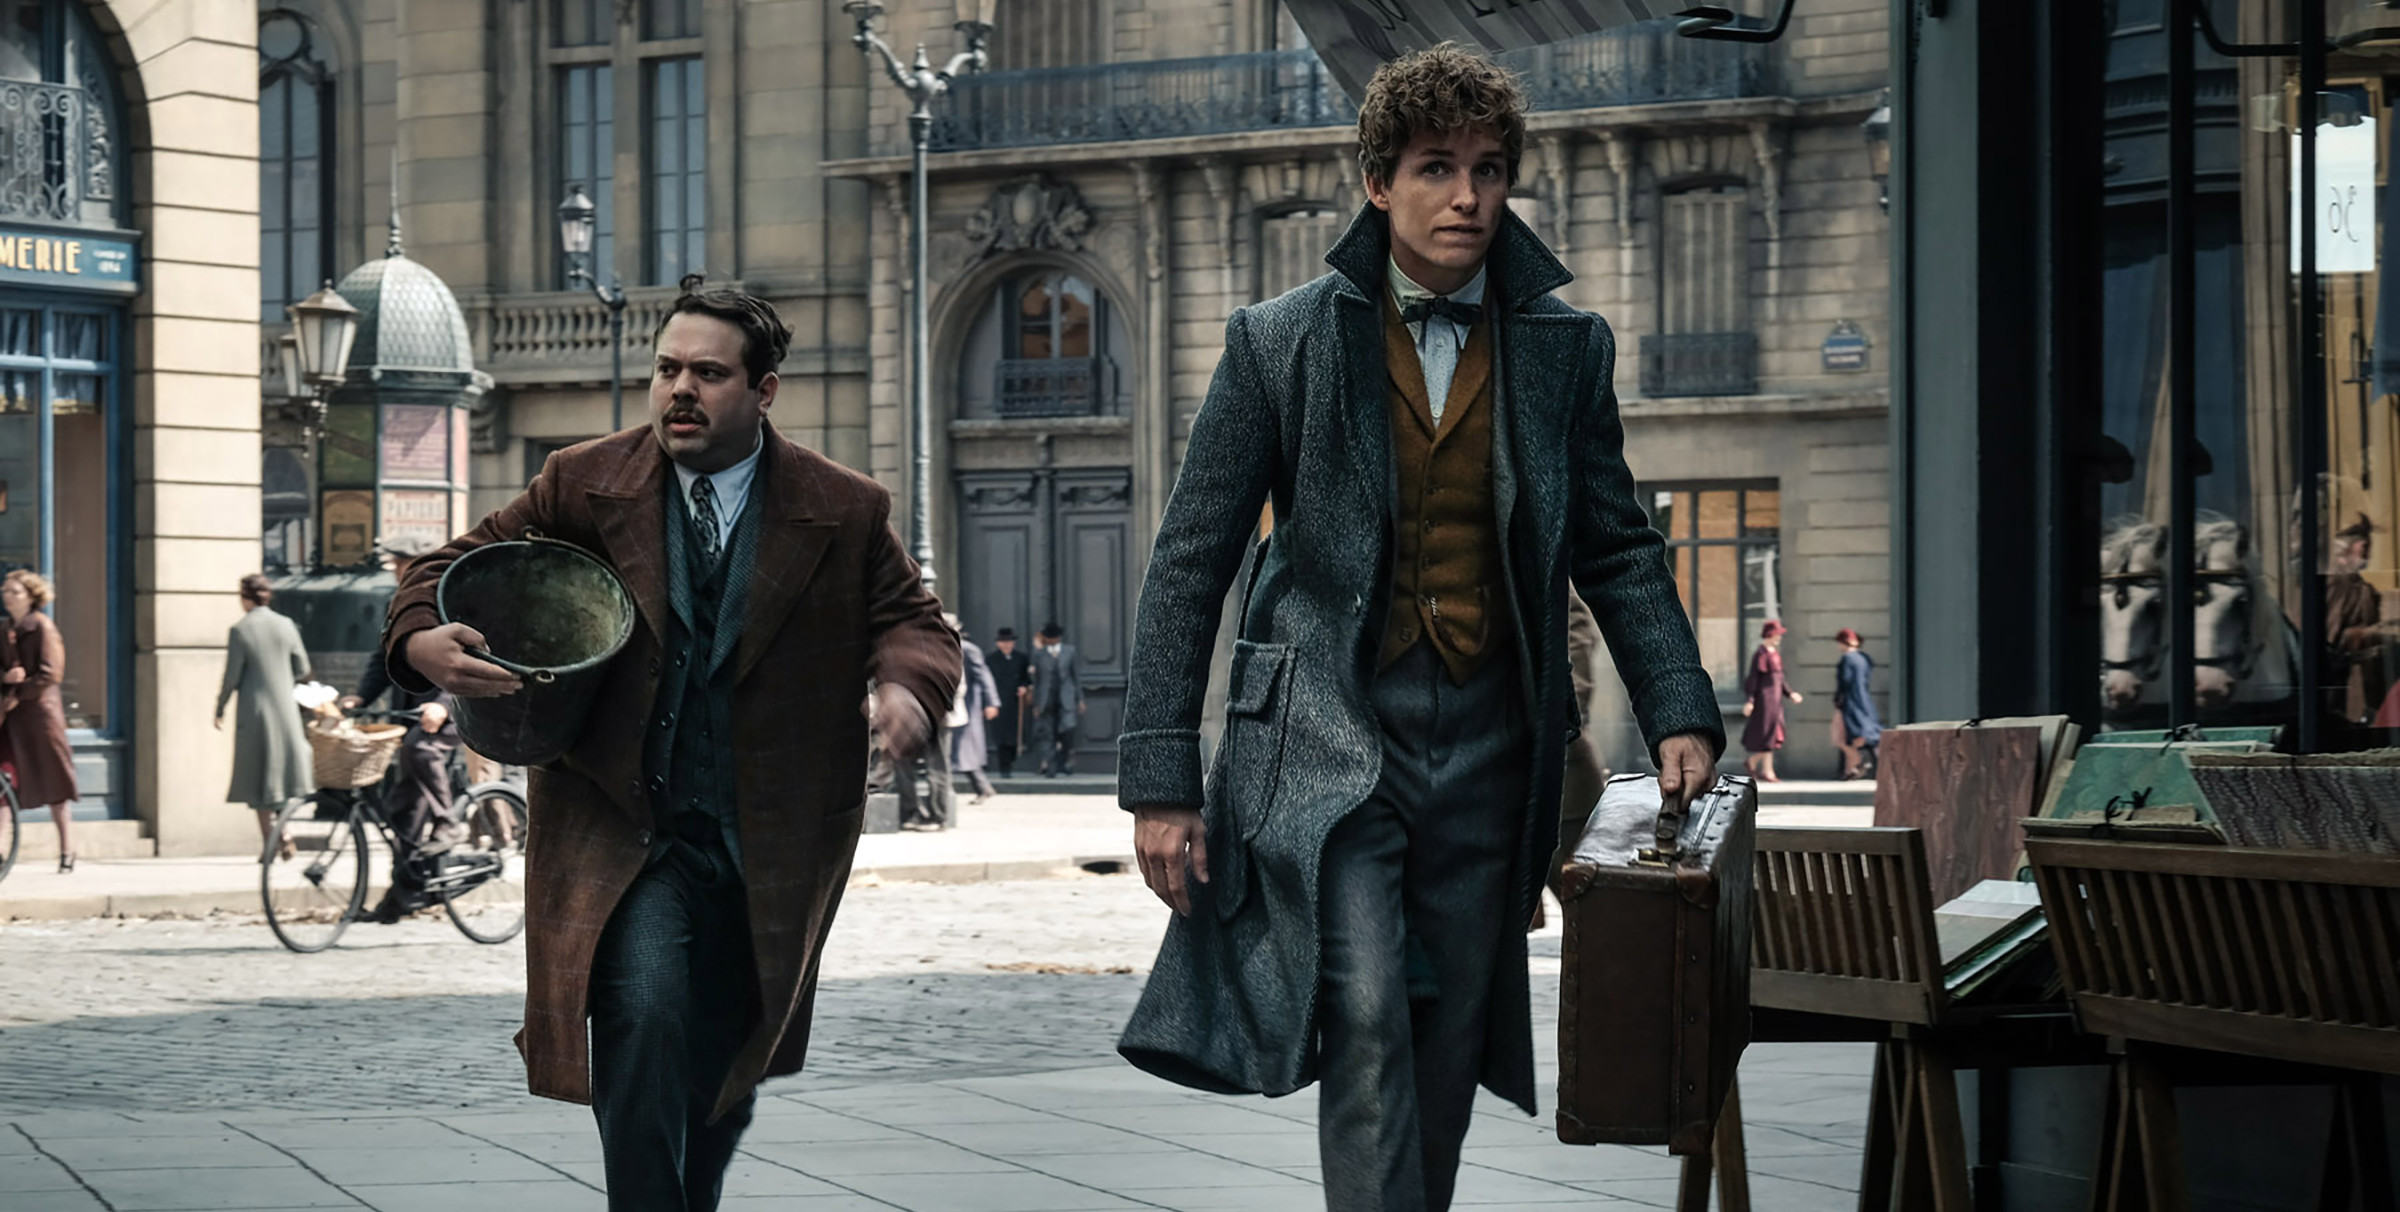 fantastic-beasts-where-find-them-movie-2016-poster Fantastic Beasts